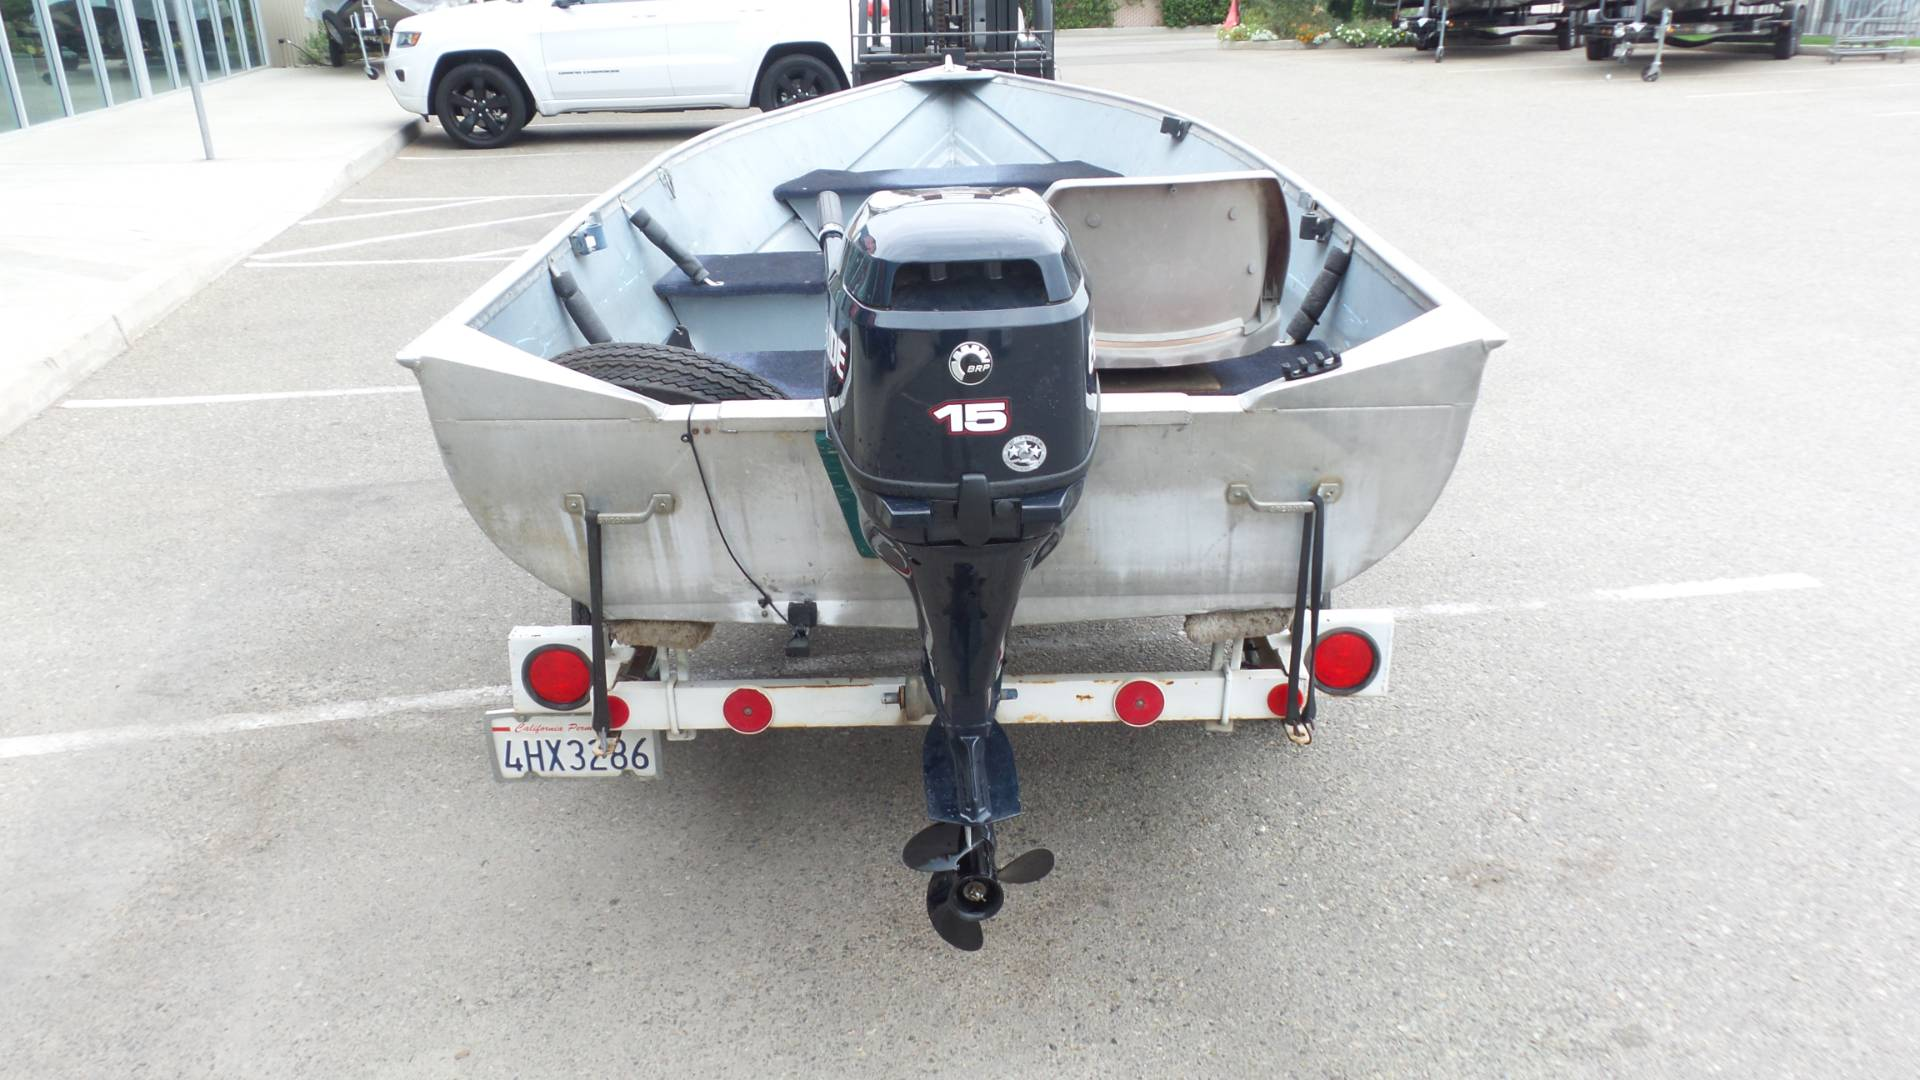 2016 EVINRUDE 15 HP 4S with 14' ALUMINUM FISHING BOAT in Madera, California